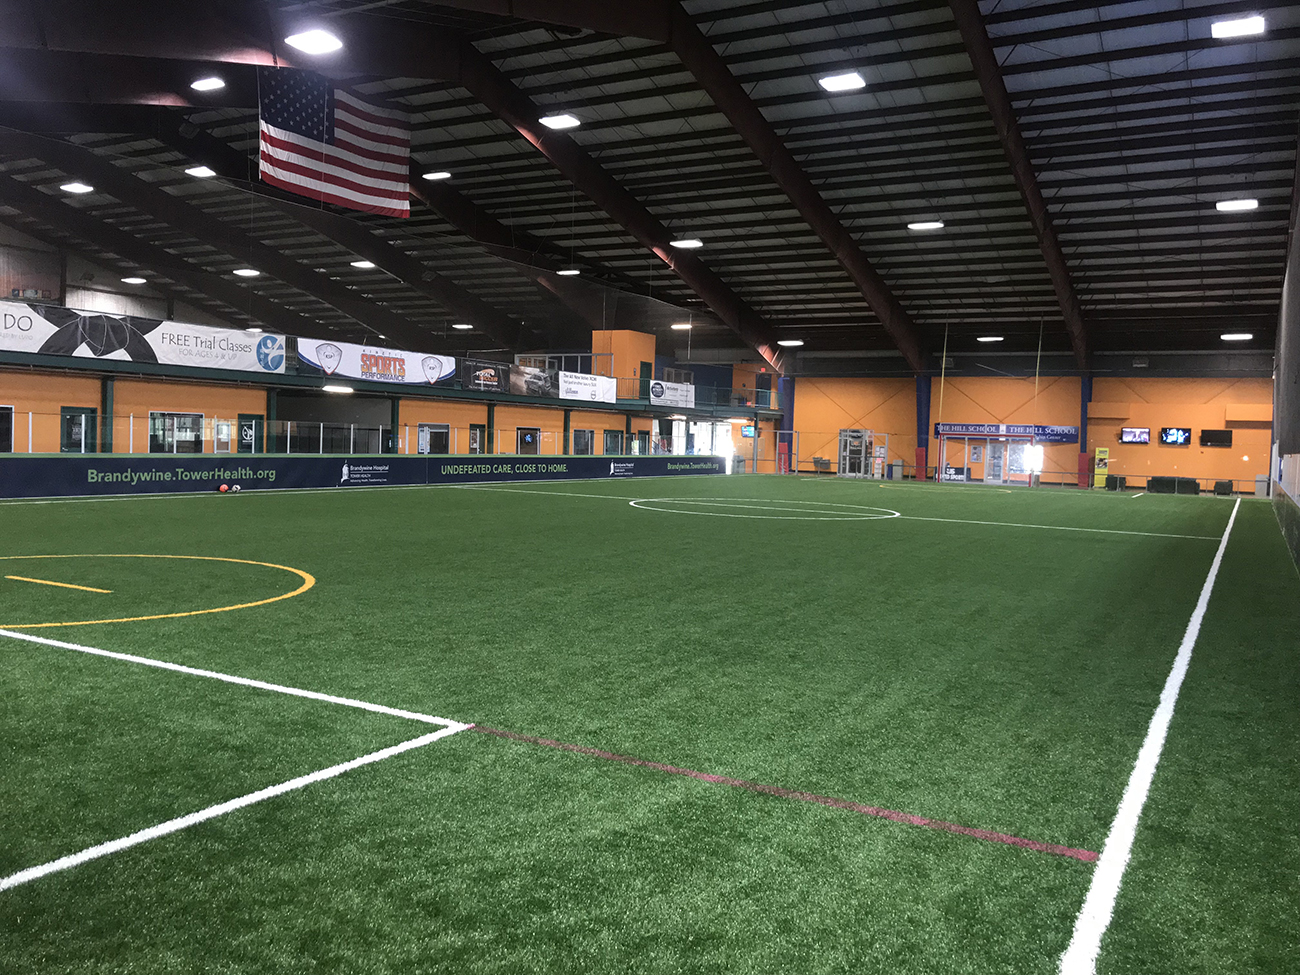 Sports Training Center, AstroTurf Artificial Turf